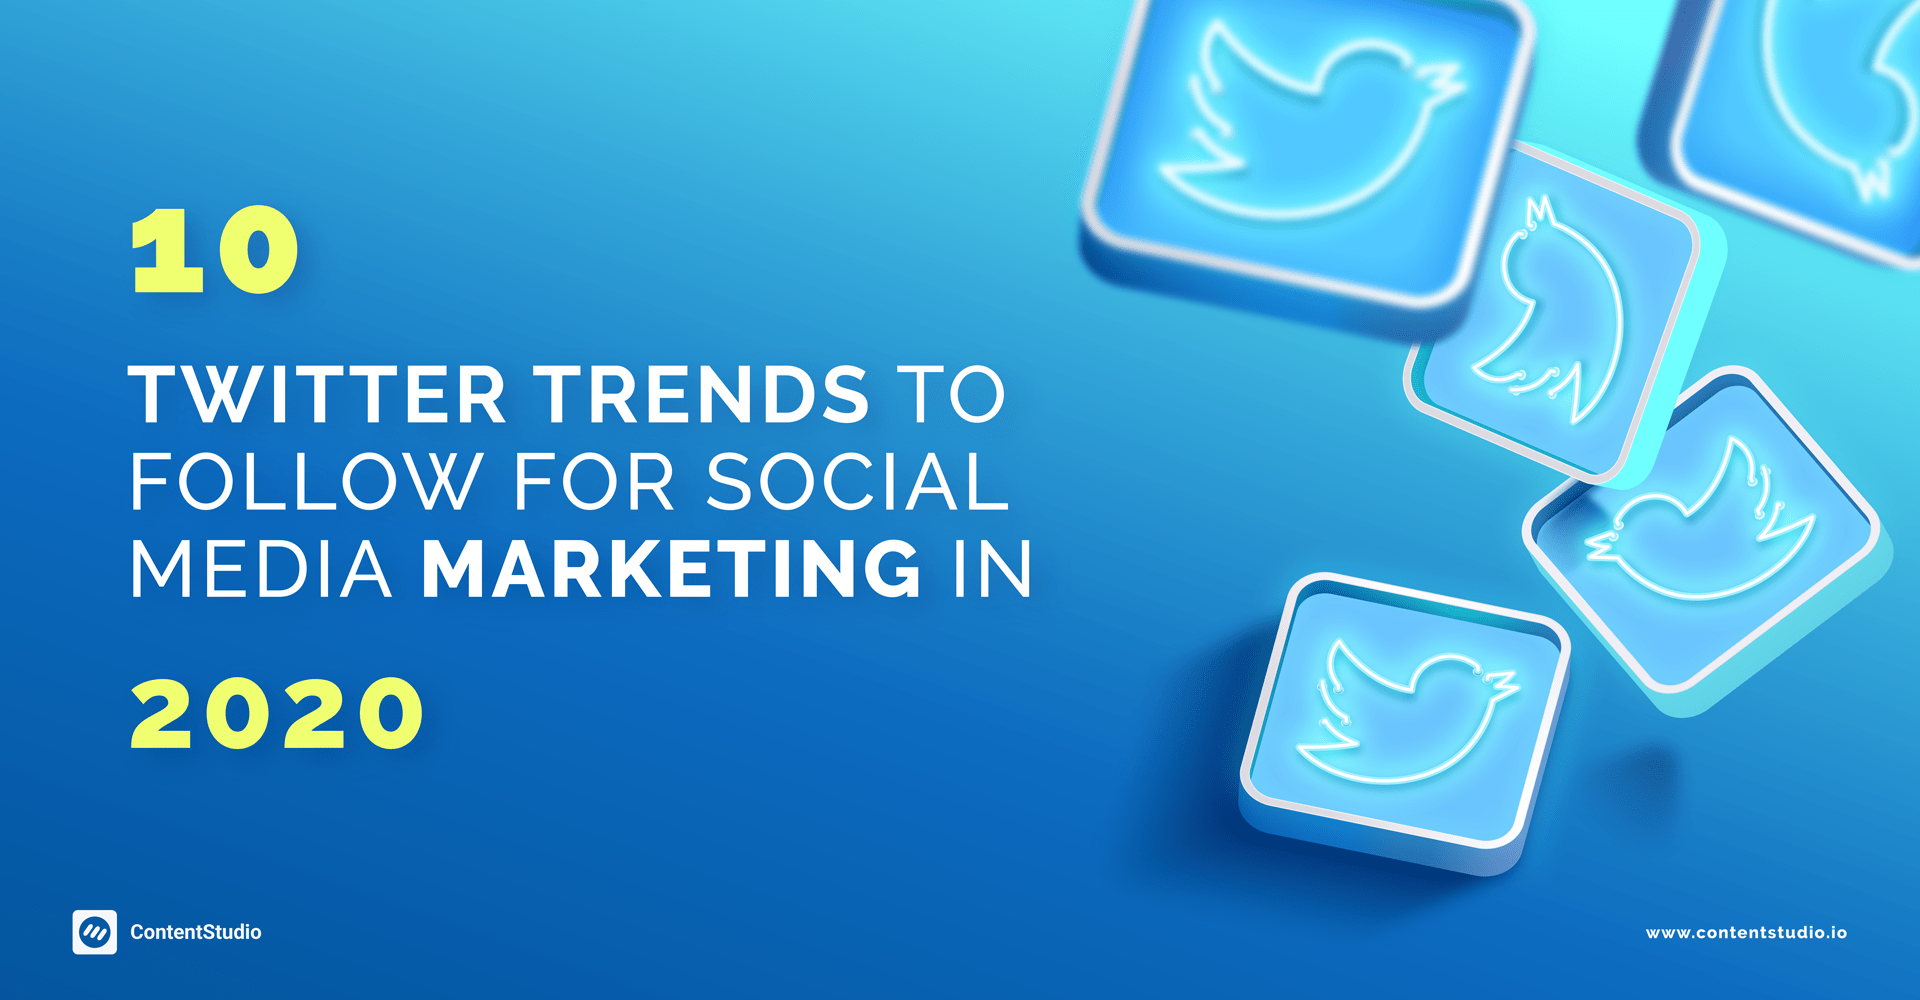 Twitter marketing trends 2020